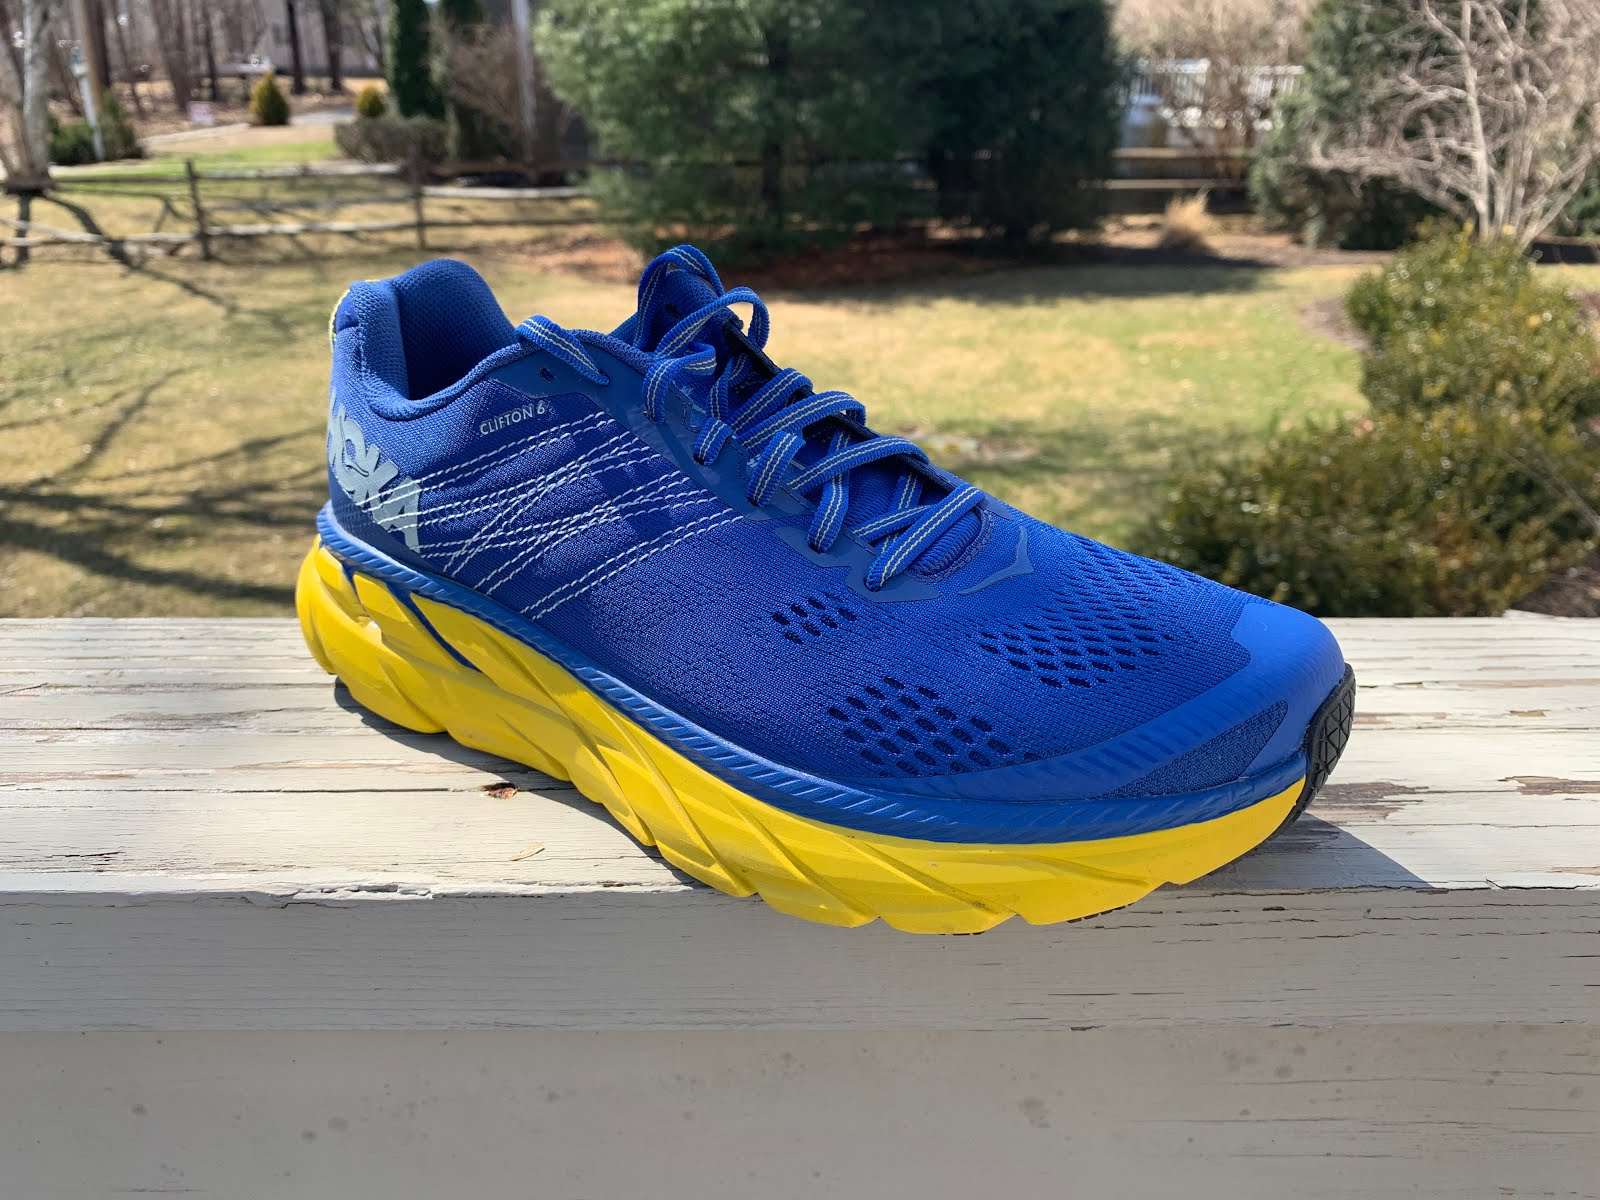 3734c69c2f8 Road Trail Run  Hoka ONE ONE Clifton 6 Multi Tester Review  A New ...